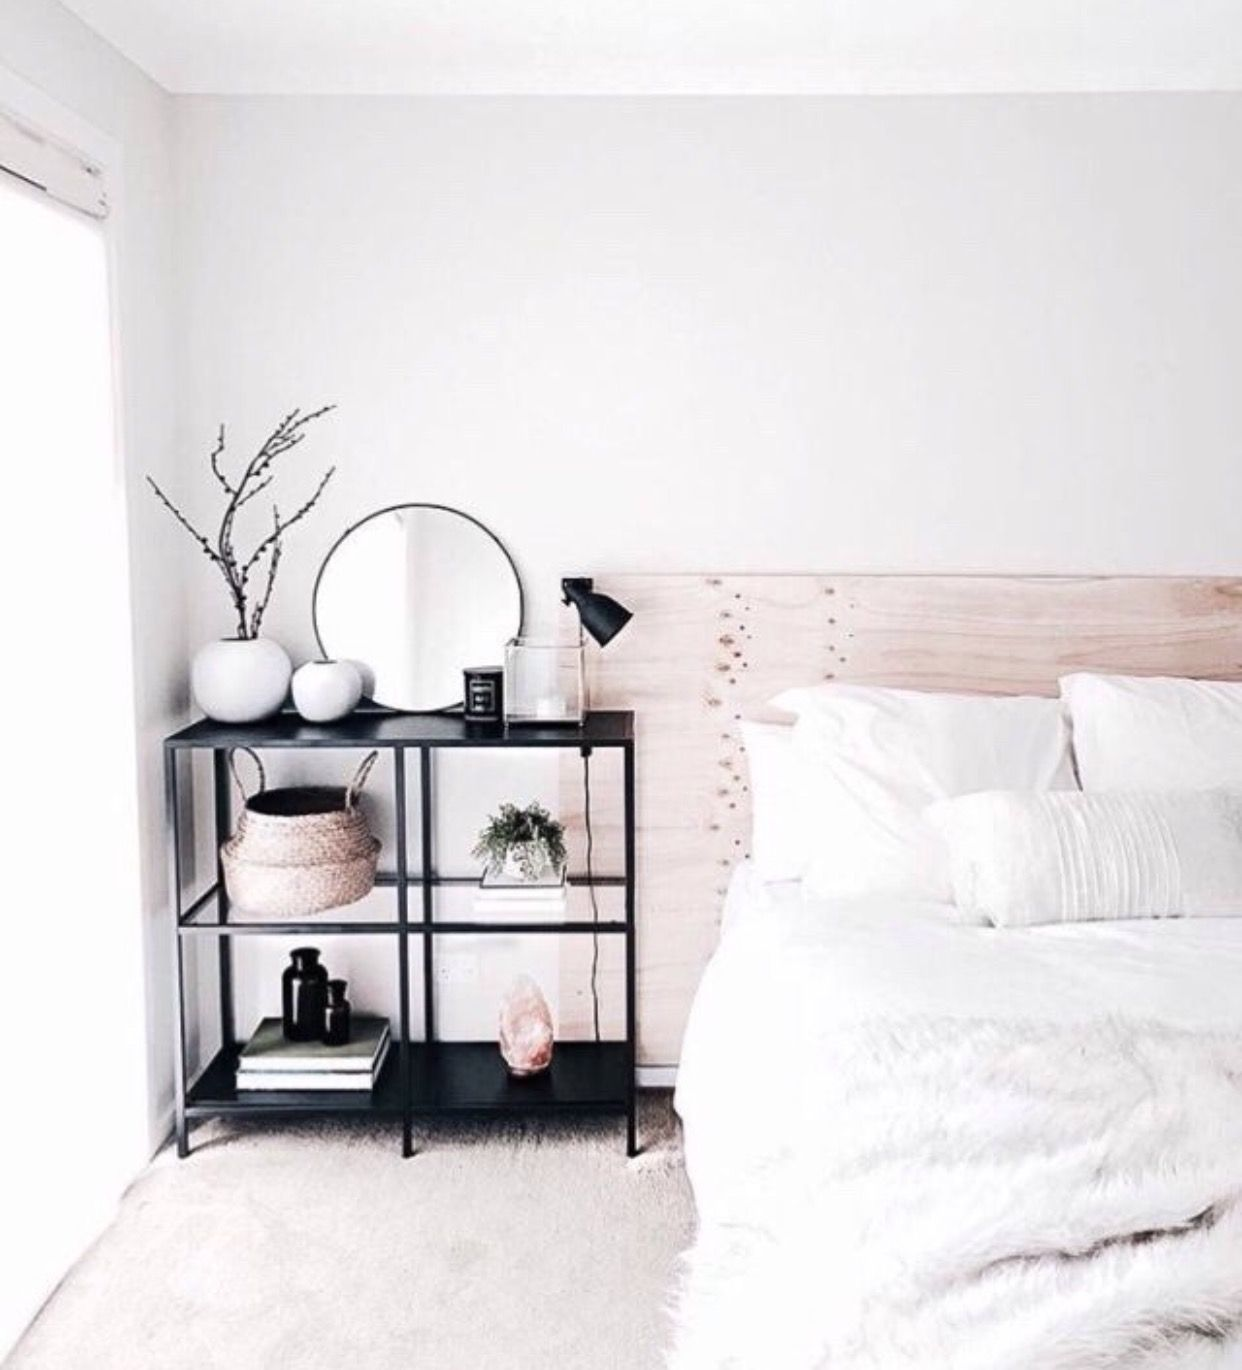 Interior home design bedroom ideas pin by ceola cook on dream rooms  pinterest  dream rooms and room